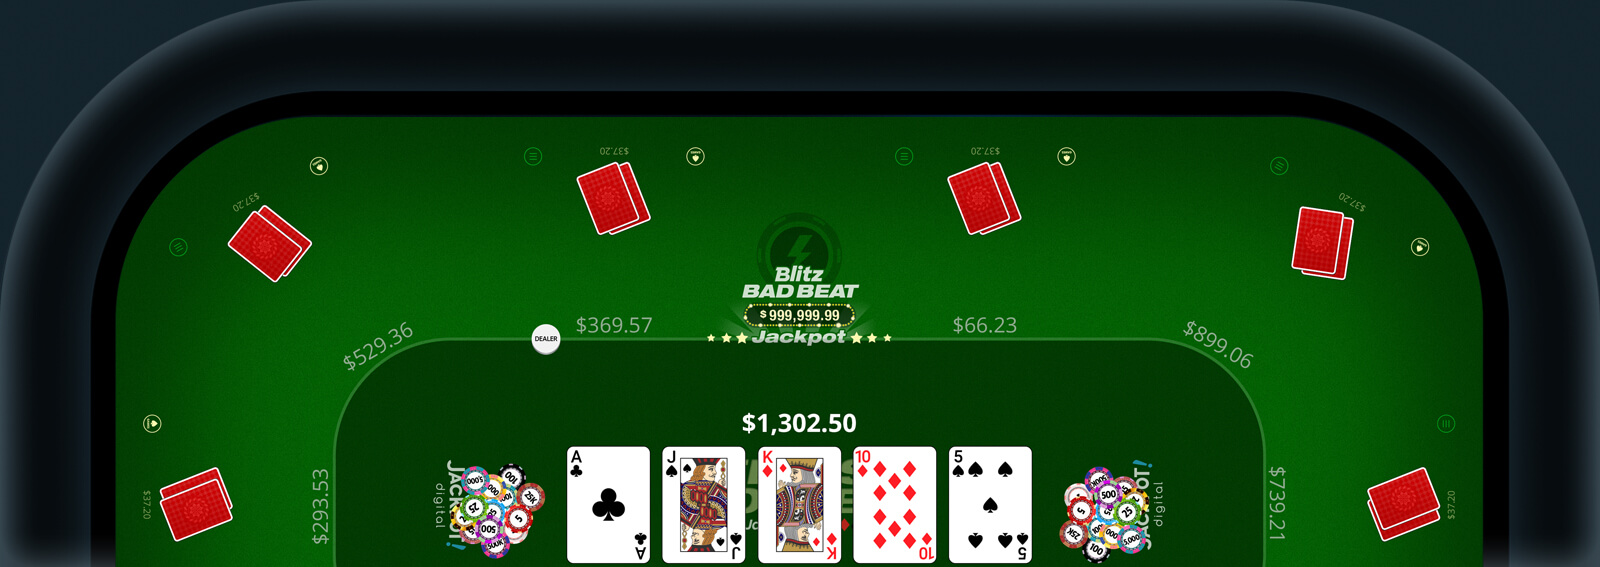 Poker, Poker Cash Games, Spielautomaten – Ideal Systems Limited